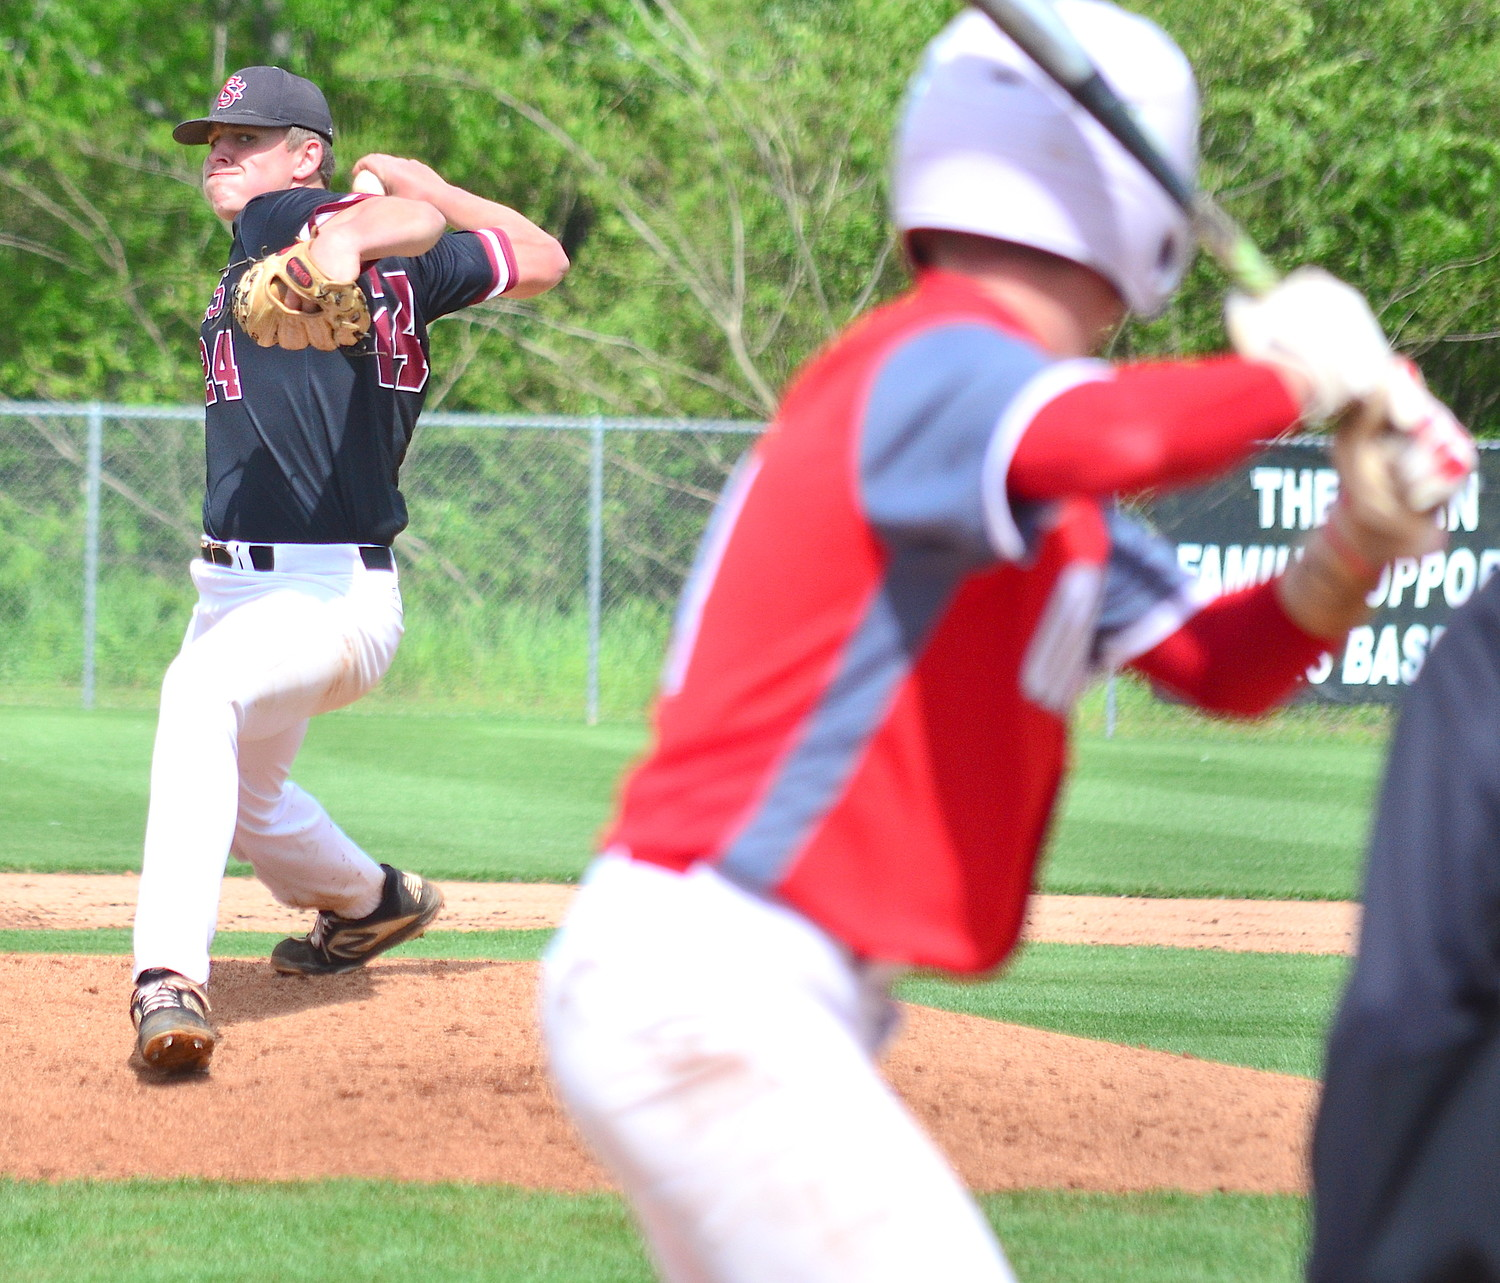 Joe Hicks throws a pitch during a playoff game this year. Hicks is the Eagle Elite Baseball Player of the Year for the second consecutive season.